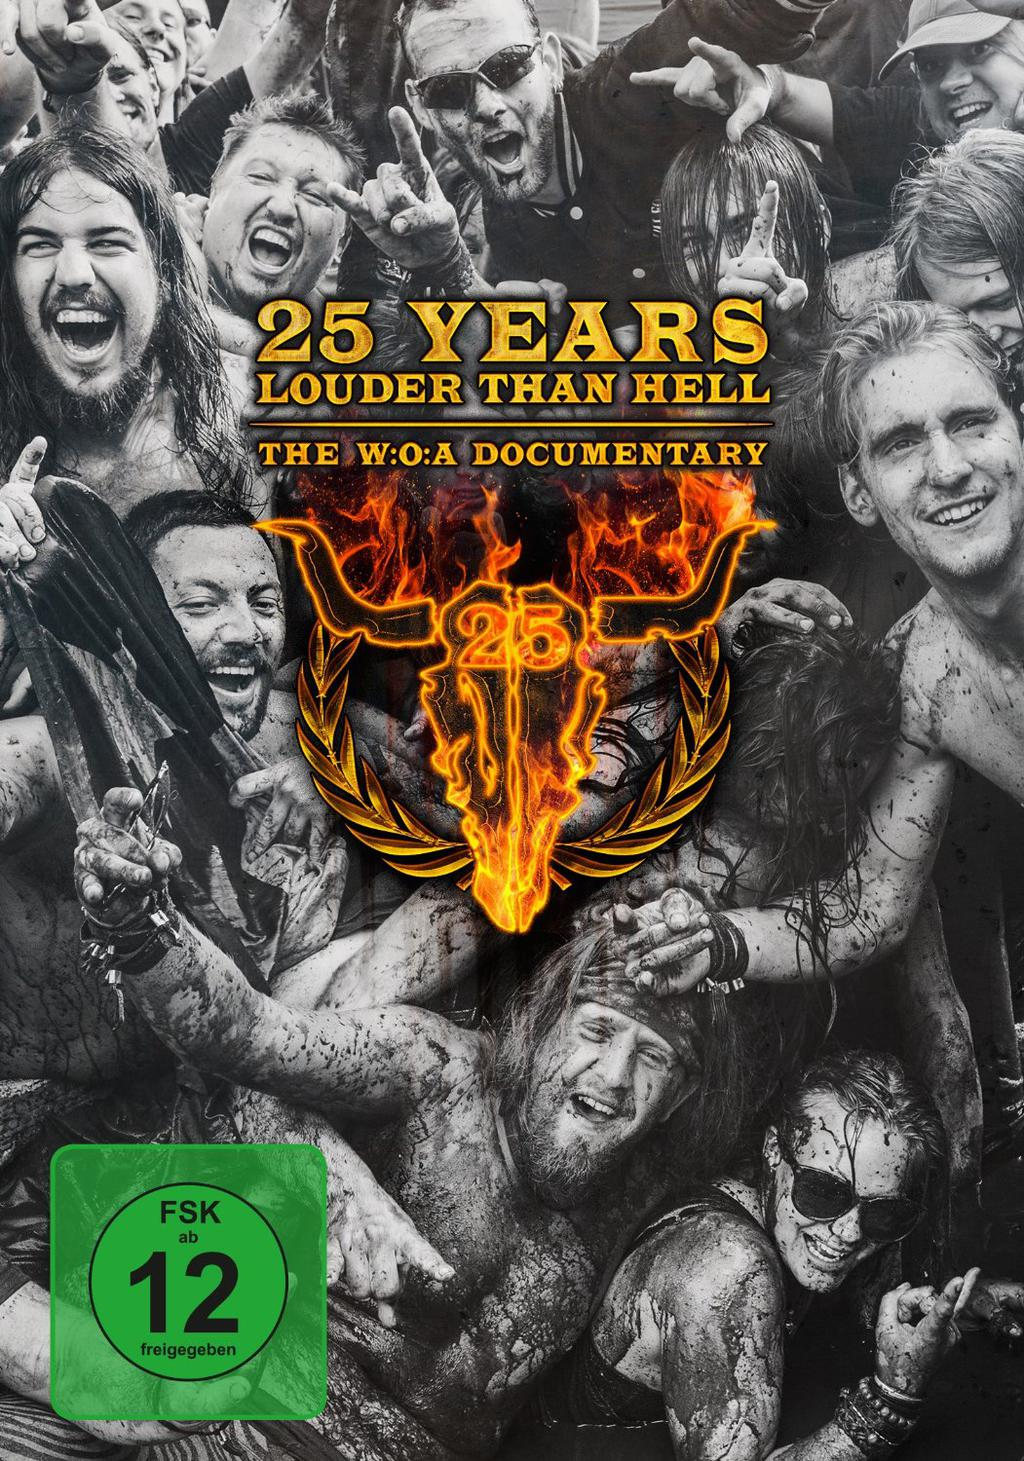 The W:O:A Documentary - 25 Years Louder Than Hell BluRay -